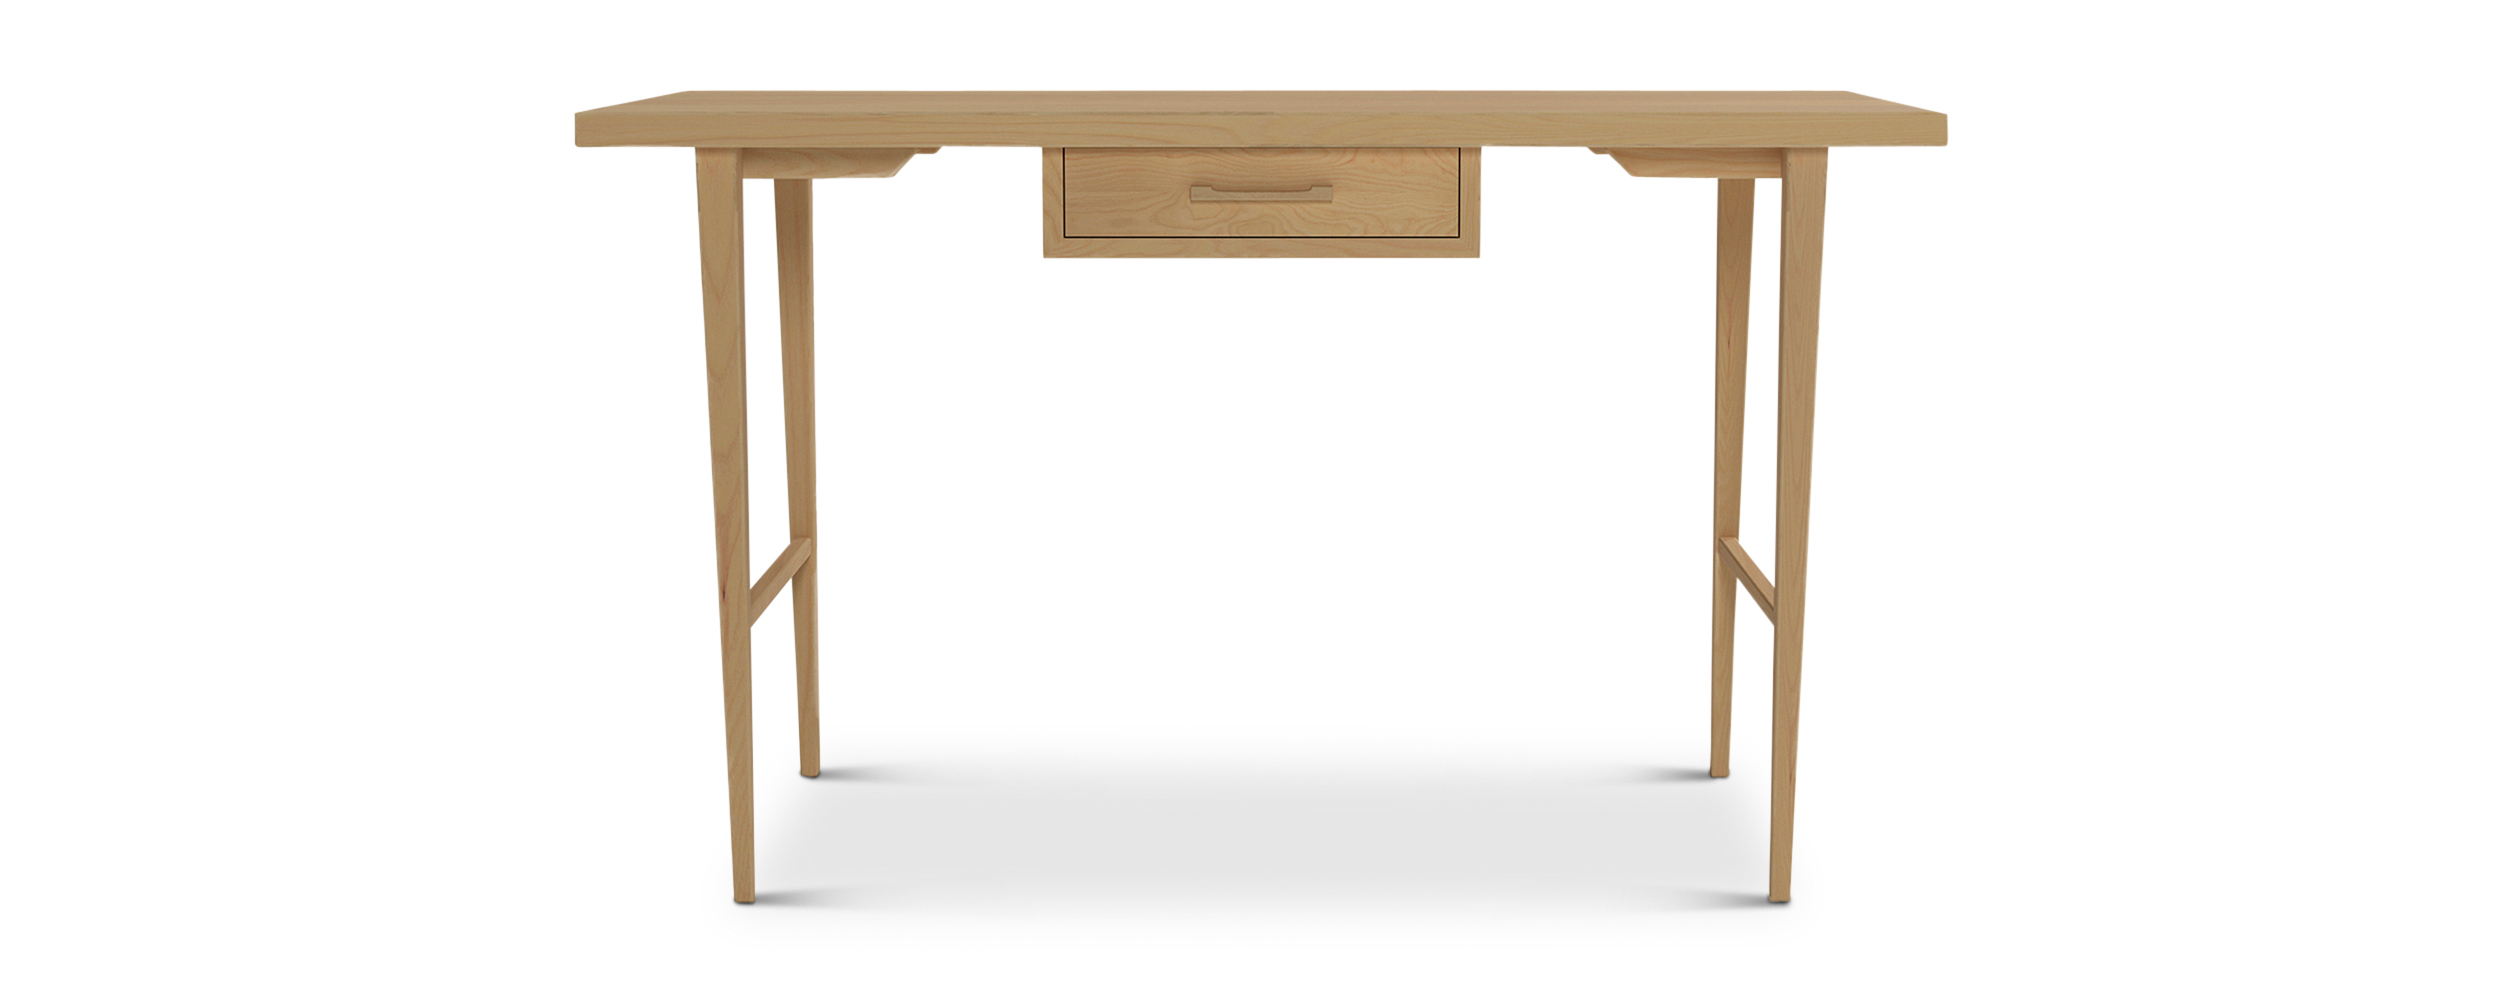 Single drawer small ash classic solid wood desk with thin tapered legs